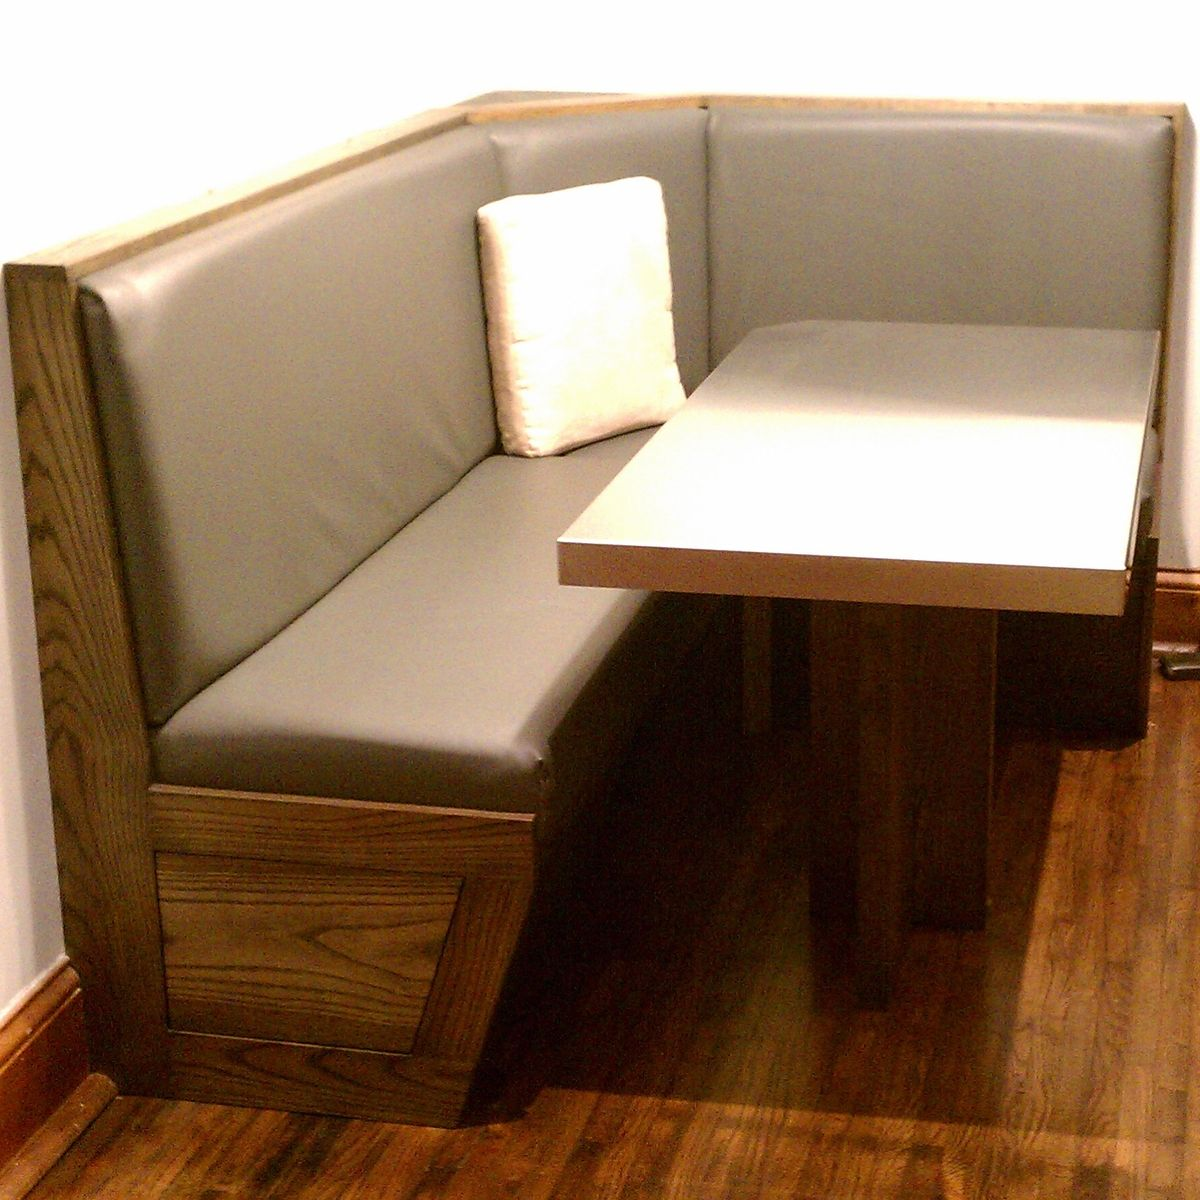 Built In Booth And Table